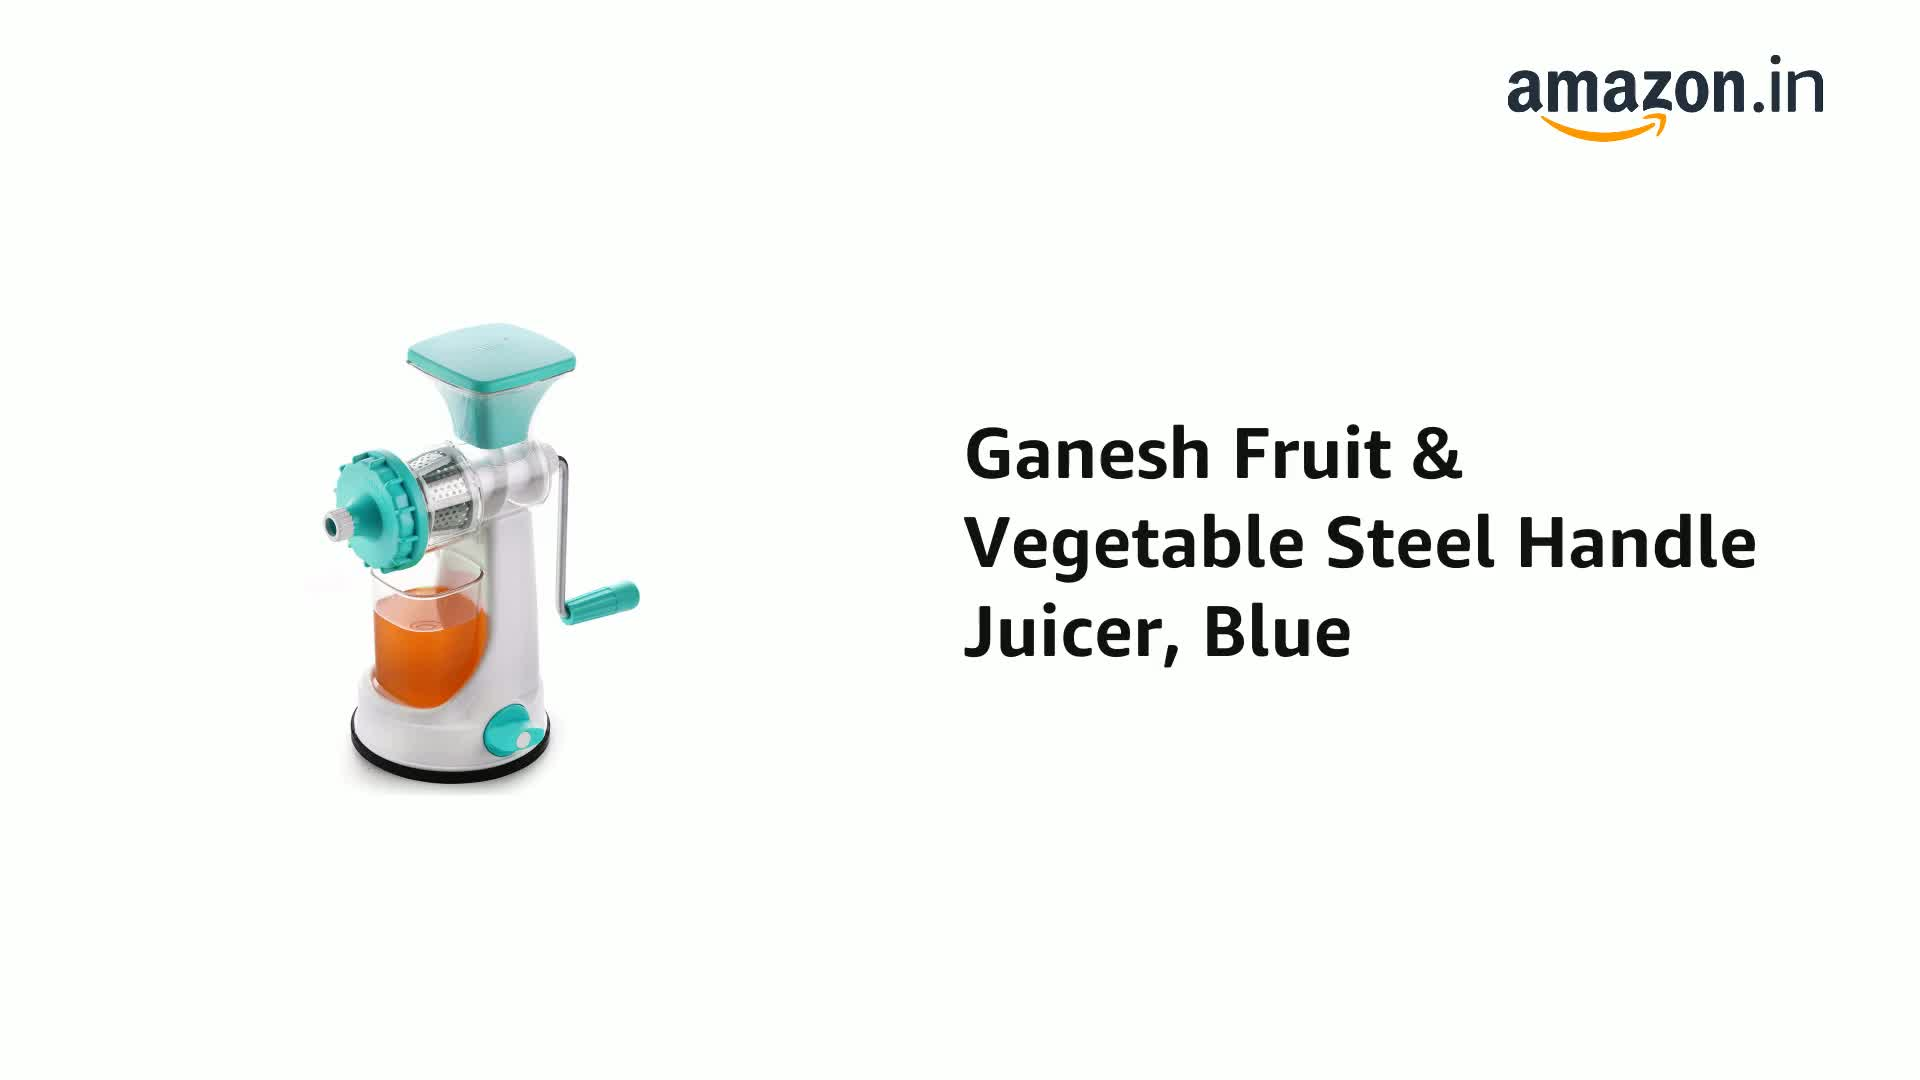 Ganesh Fruit & Vegetable Steel Handle Juicer, Blue 2